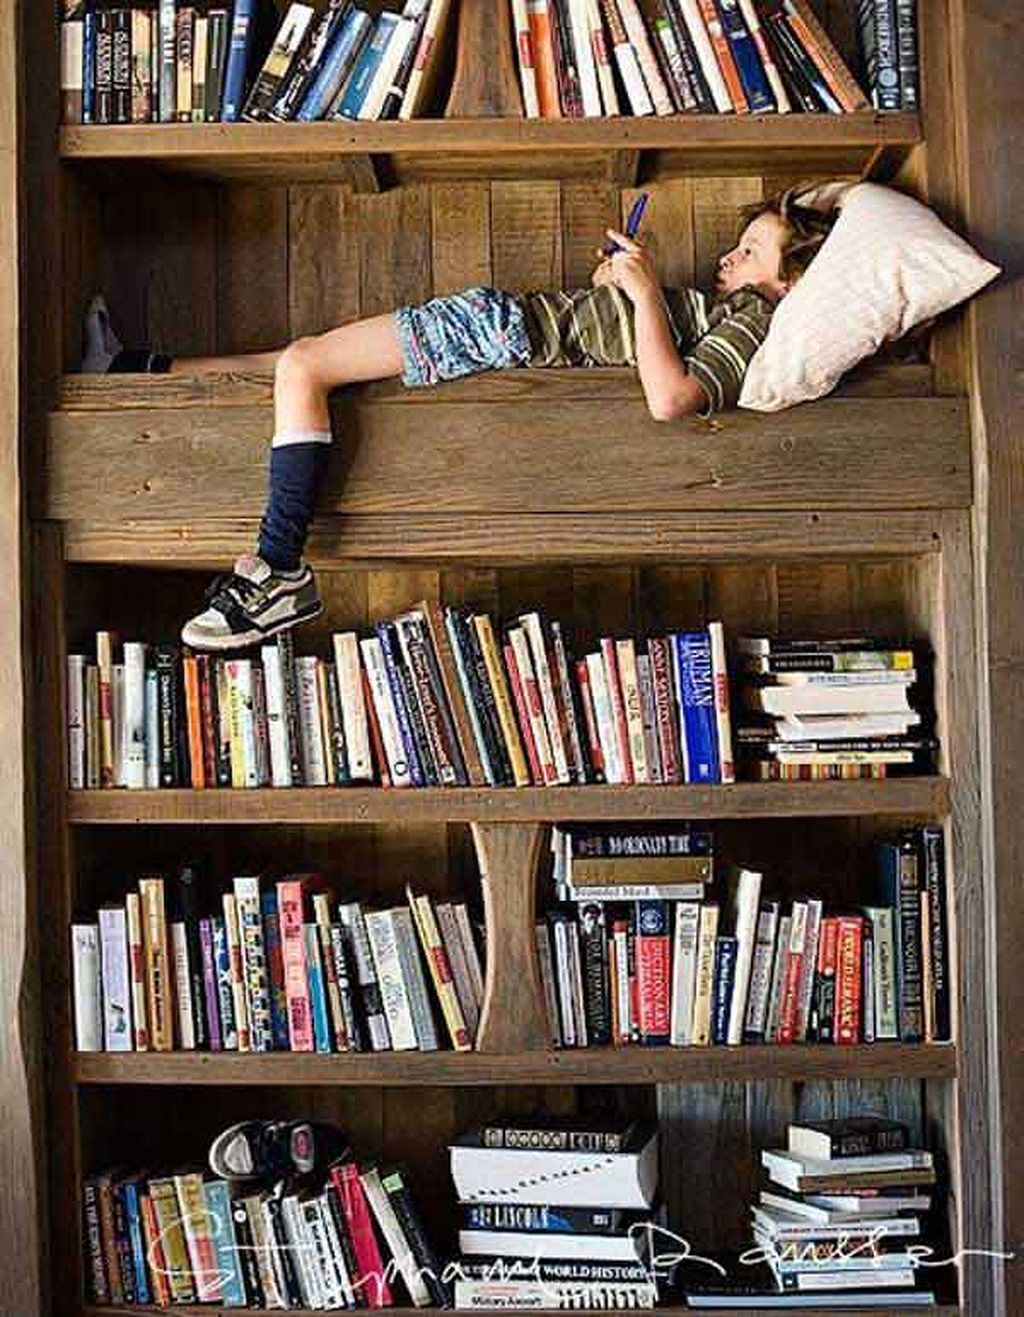 10 Things Every Bookworm Should Have in